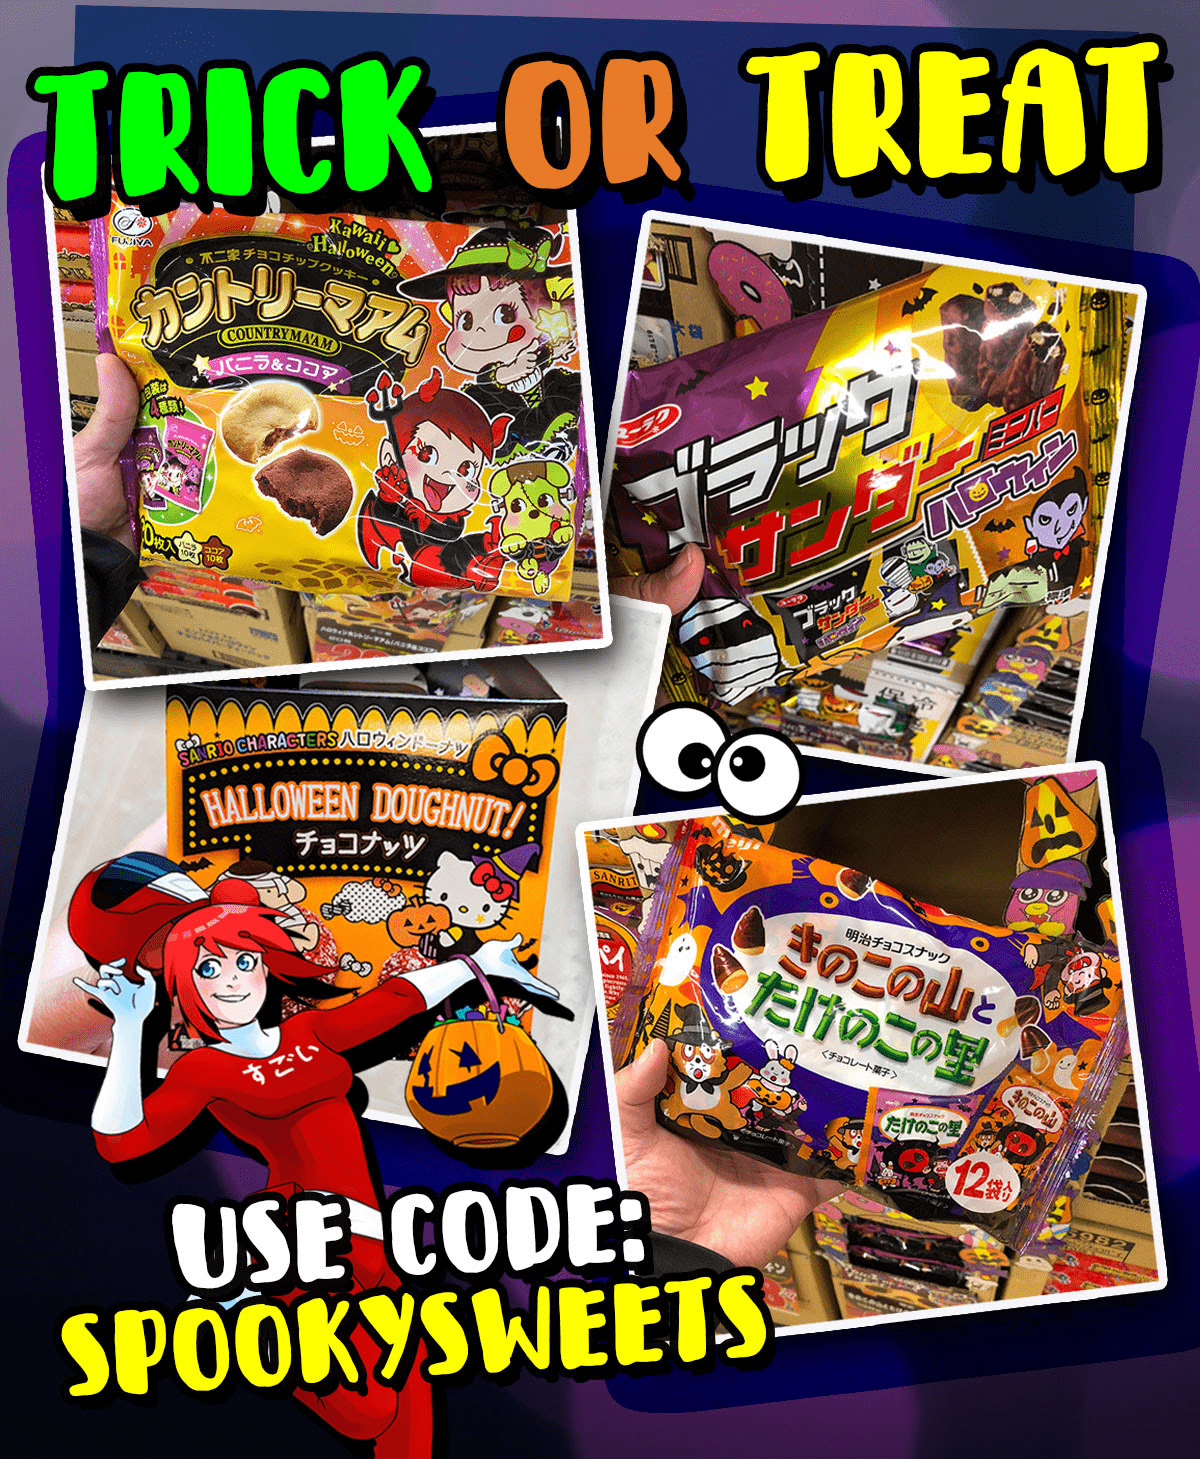 Japan Crate Coupon: Get FREE Big Bag of Halloween Candies & More With Your First Box!